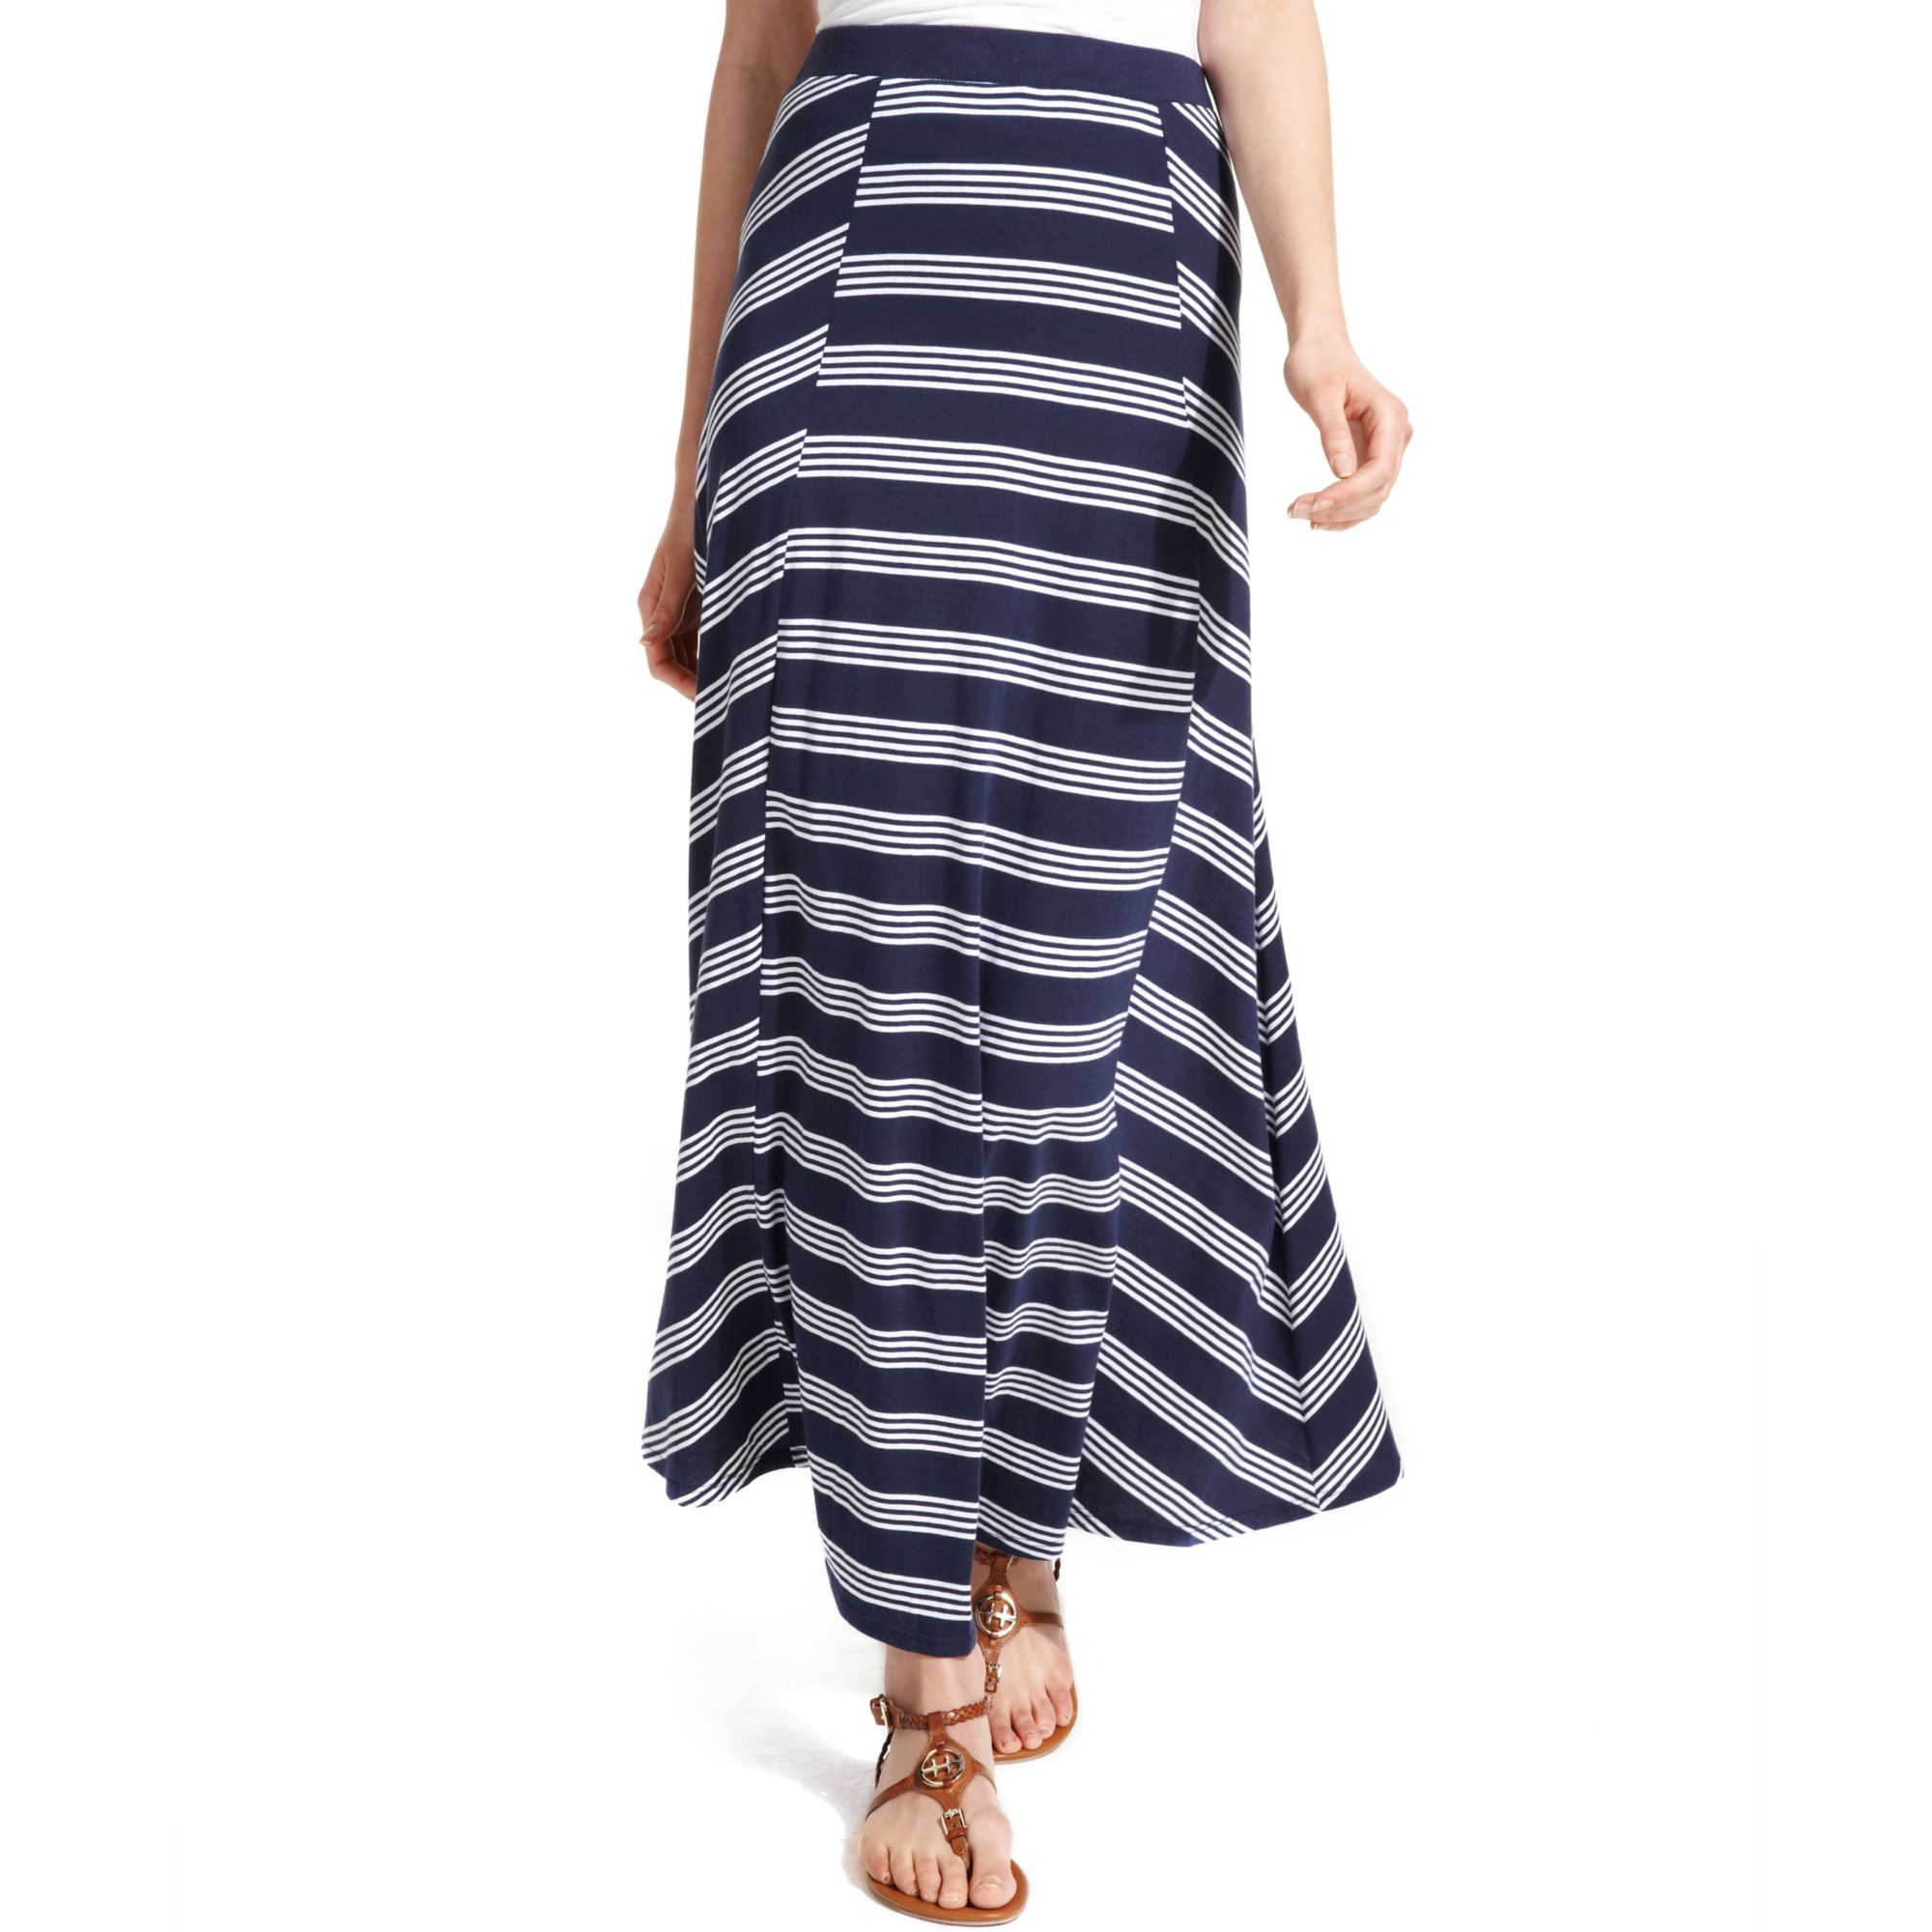 hilfiger striped maxi skirt in blue peacoat classic